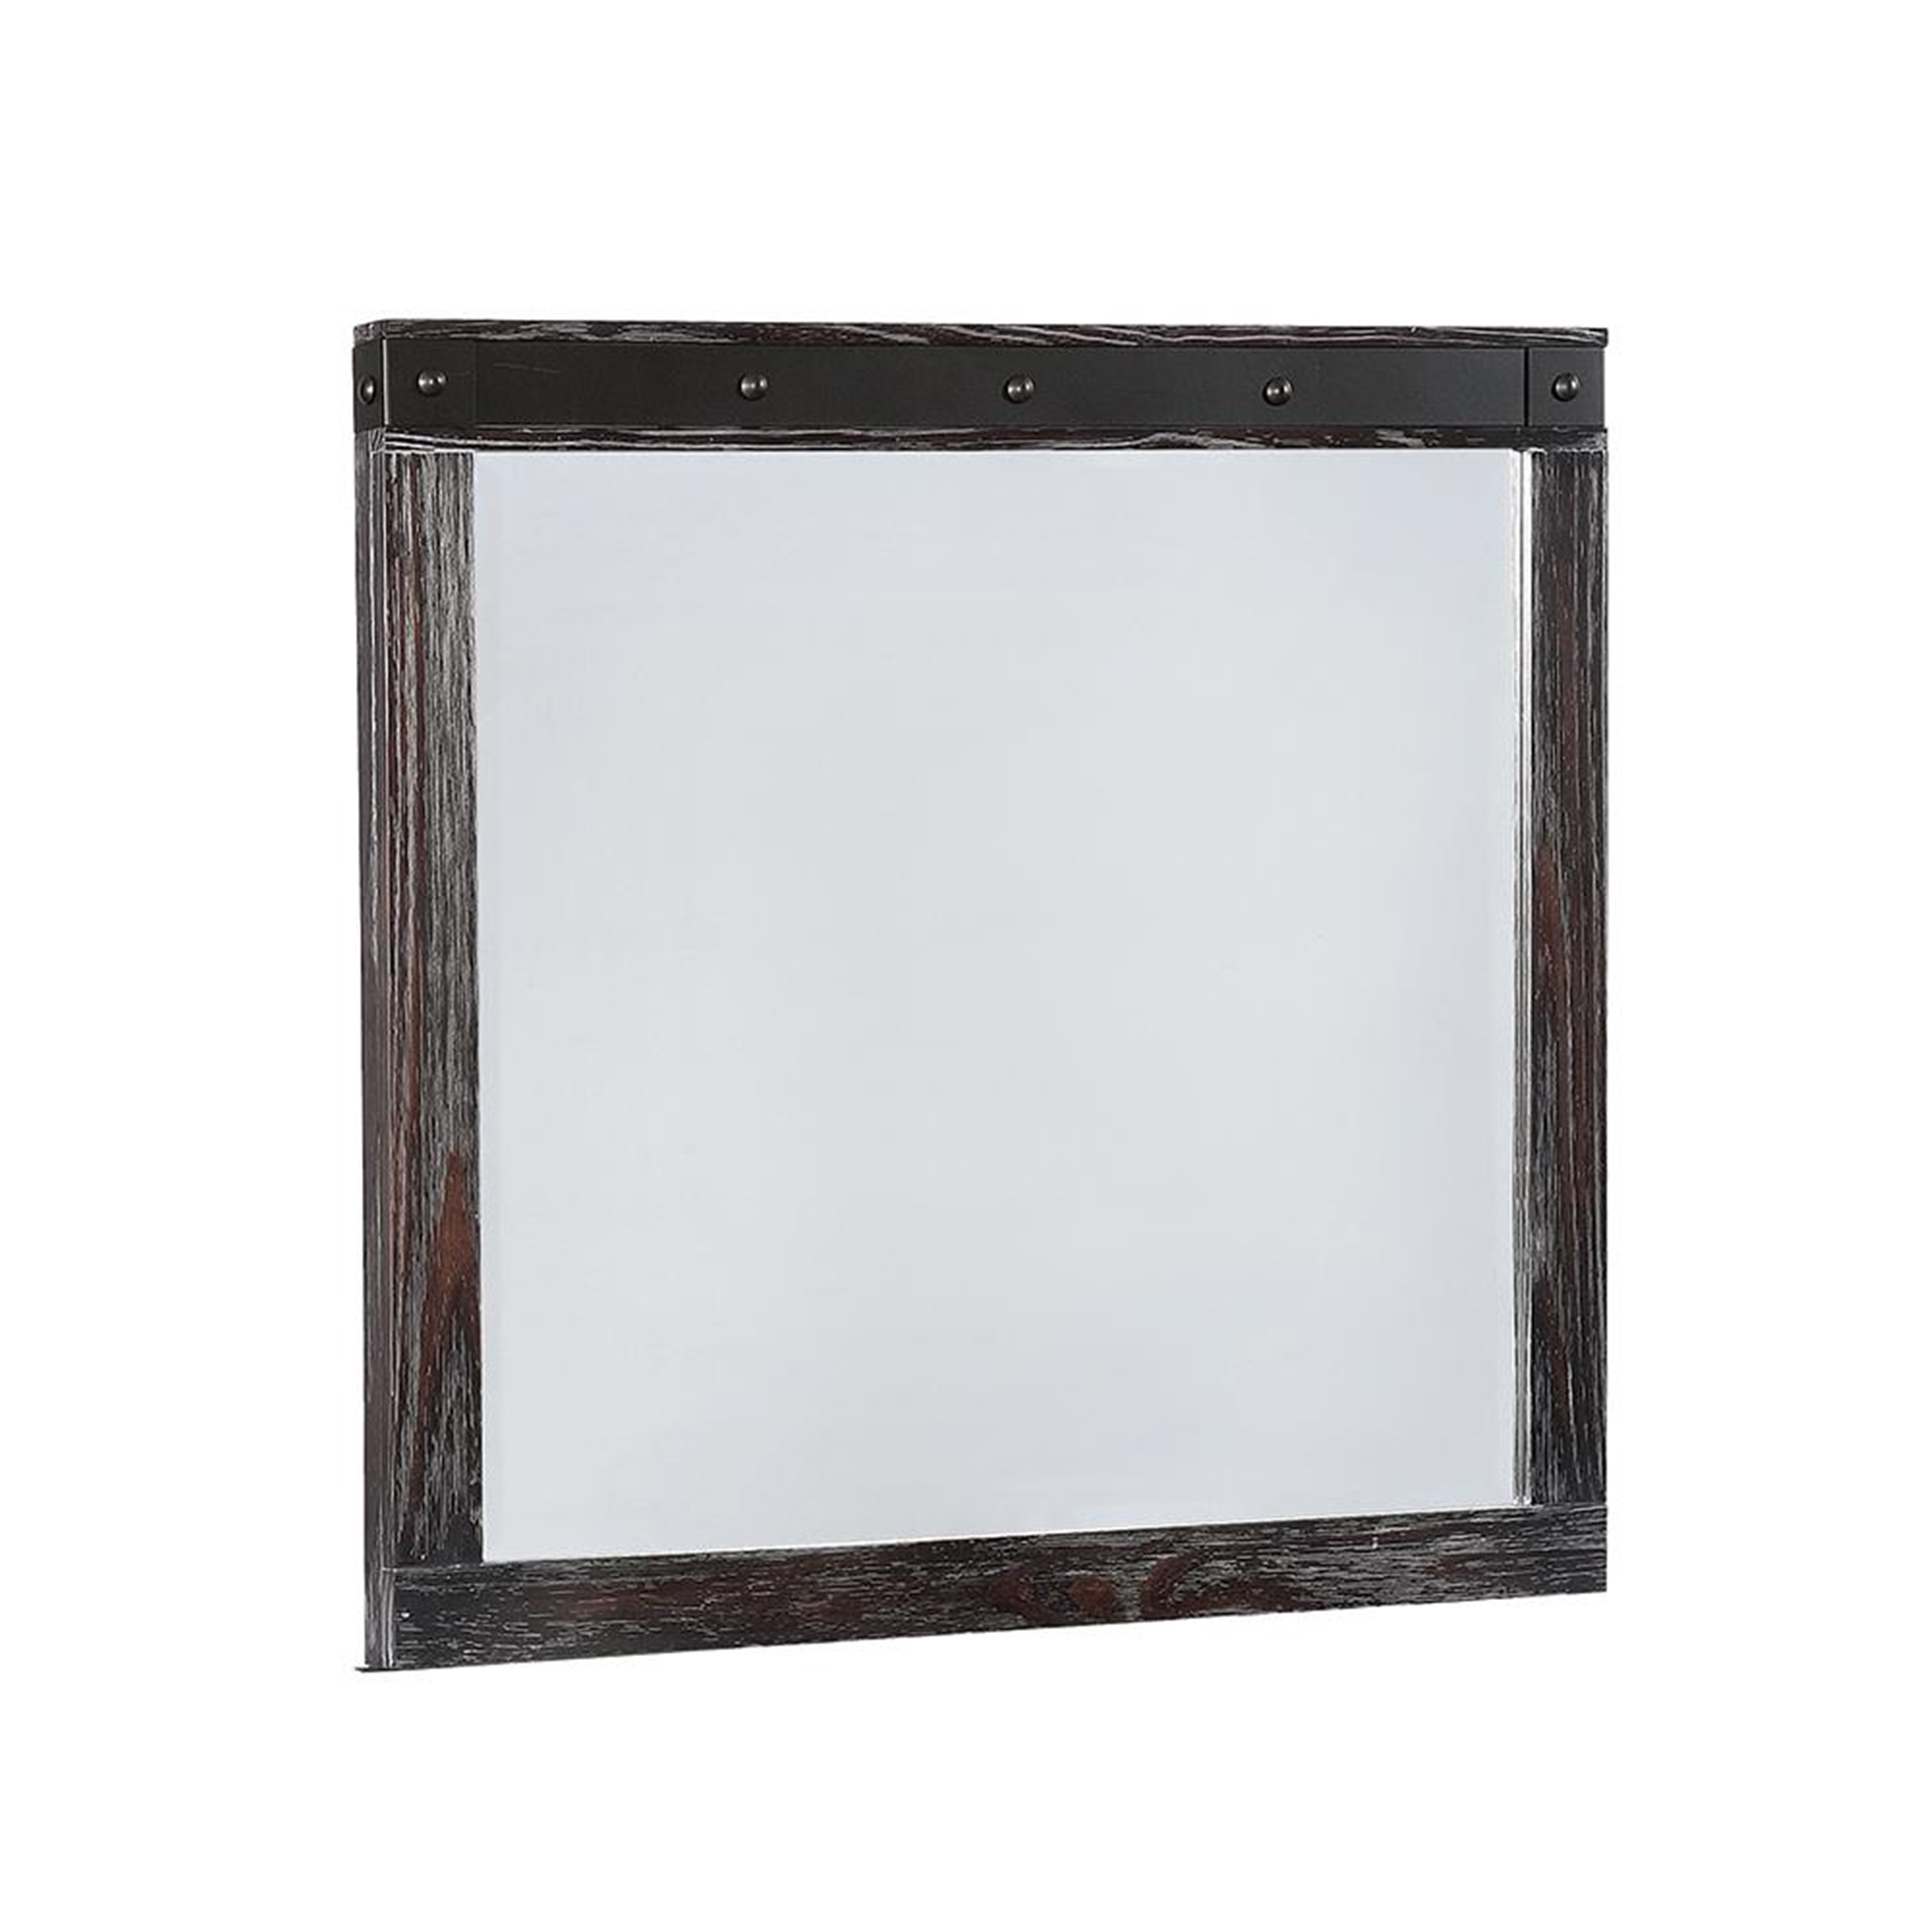 Barkley Rustic Barn Door Grey Mirror